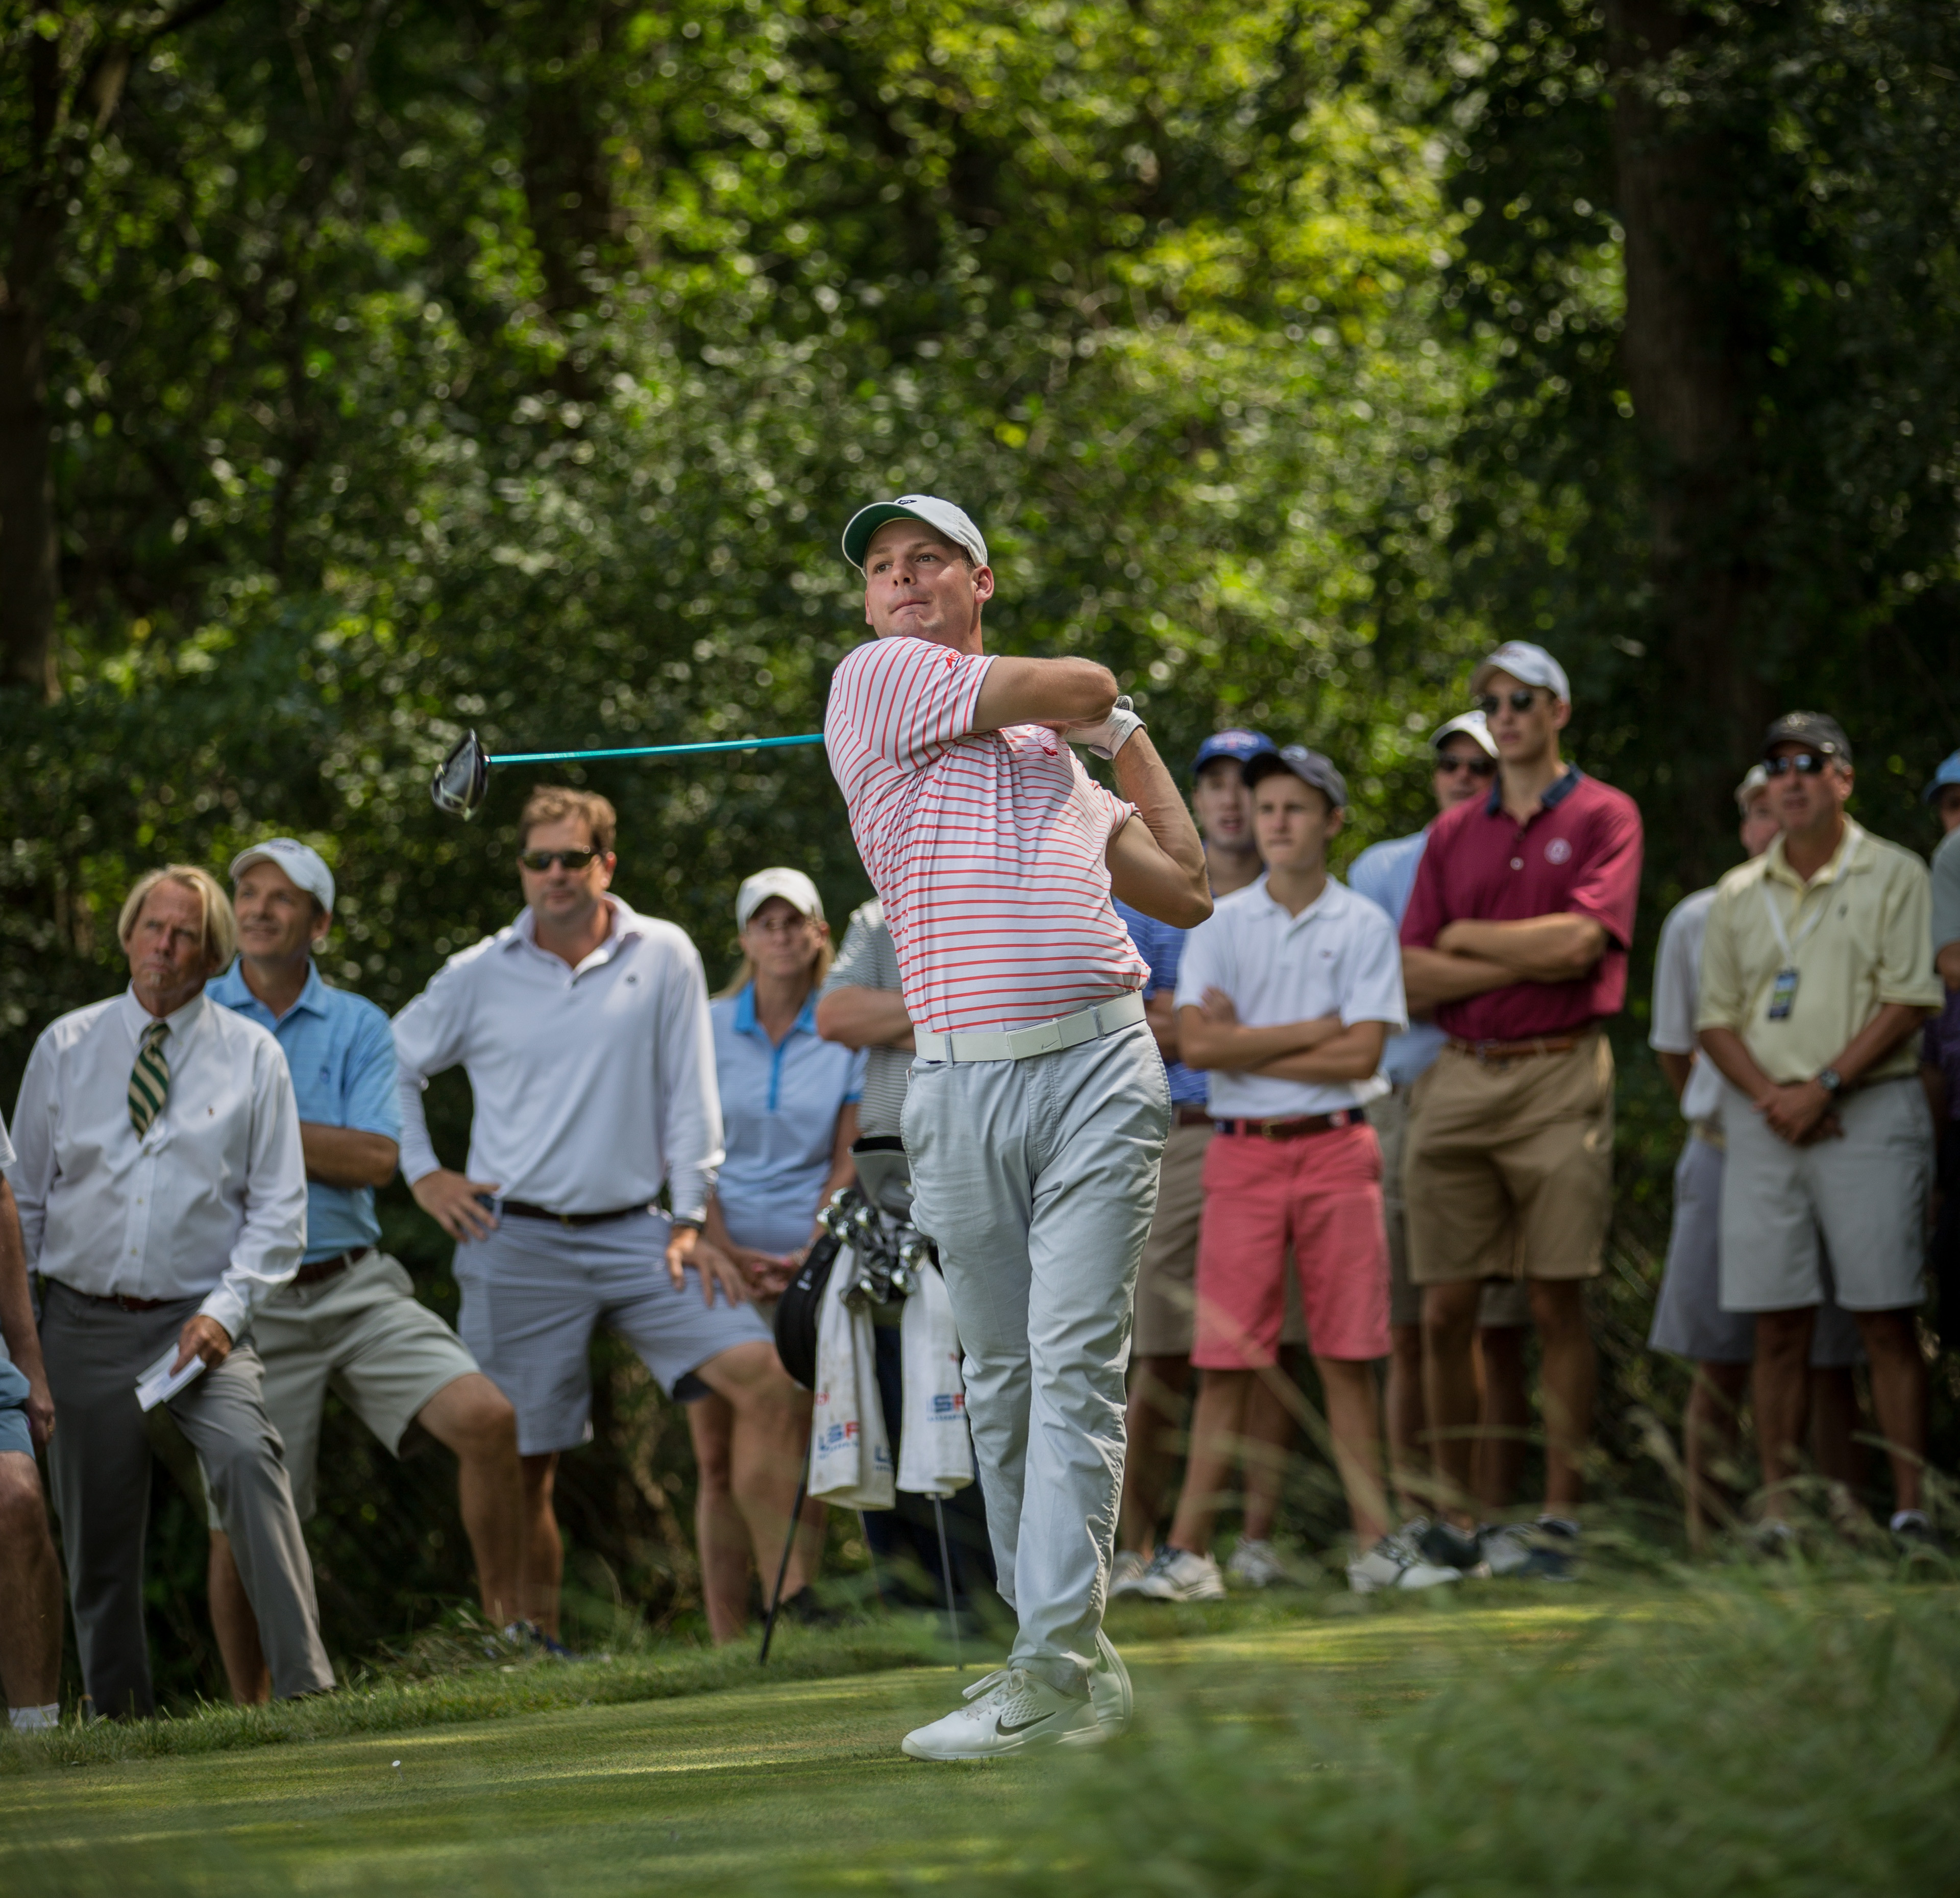 Redman and Pettit in Top 45 after First Round of US Amateur